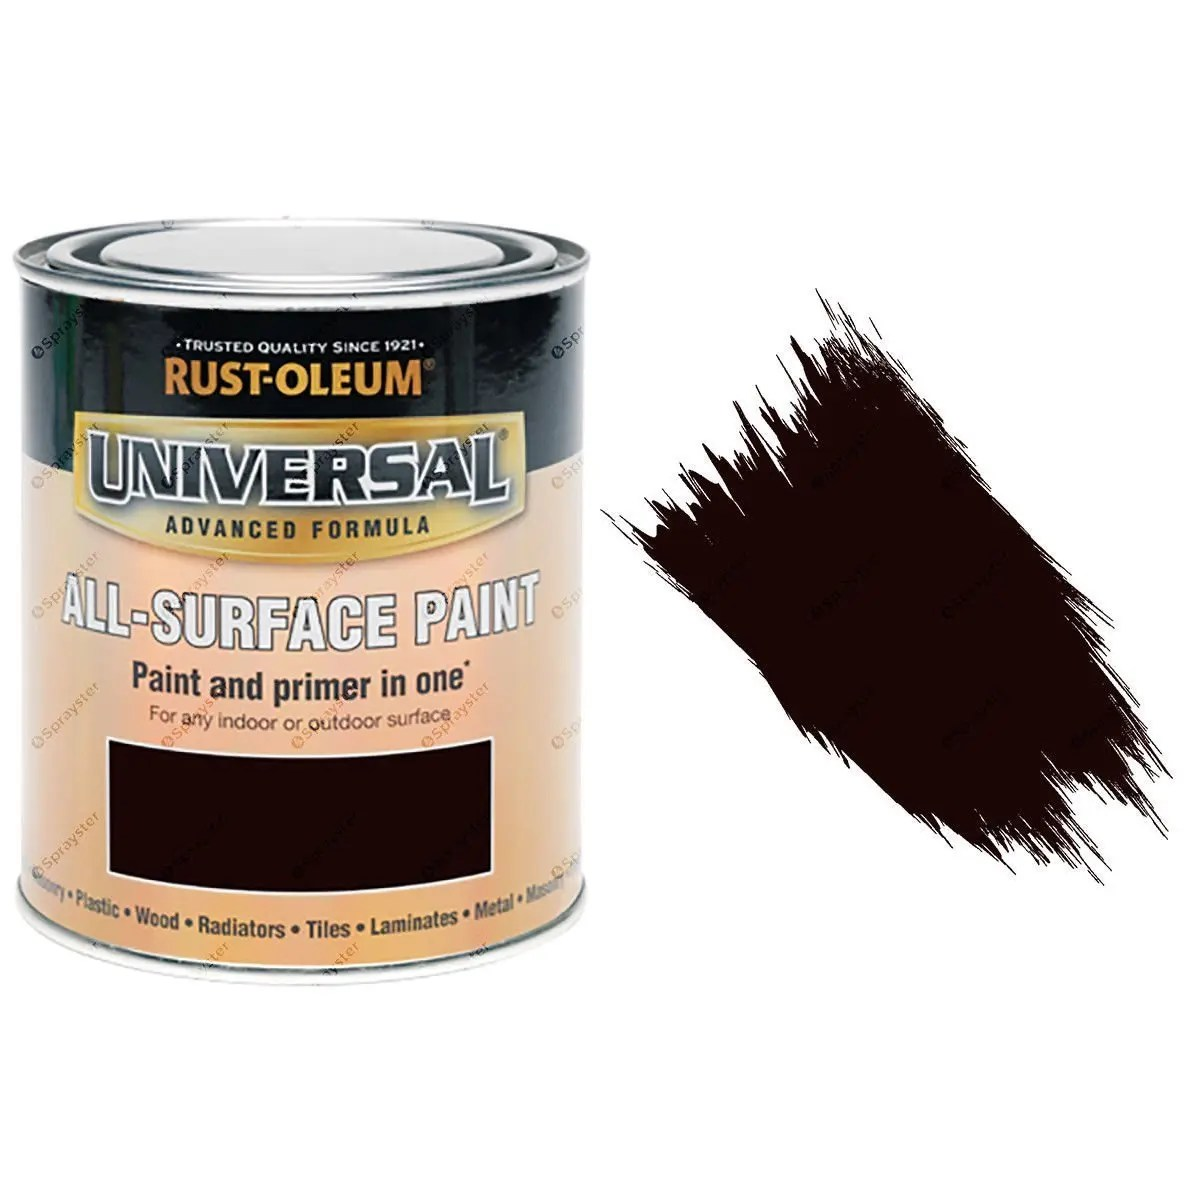 Rust-Oleum Universal Espresso Brown Gloss All-Surface Brush Paint 250ml